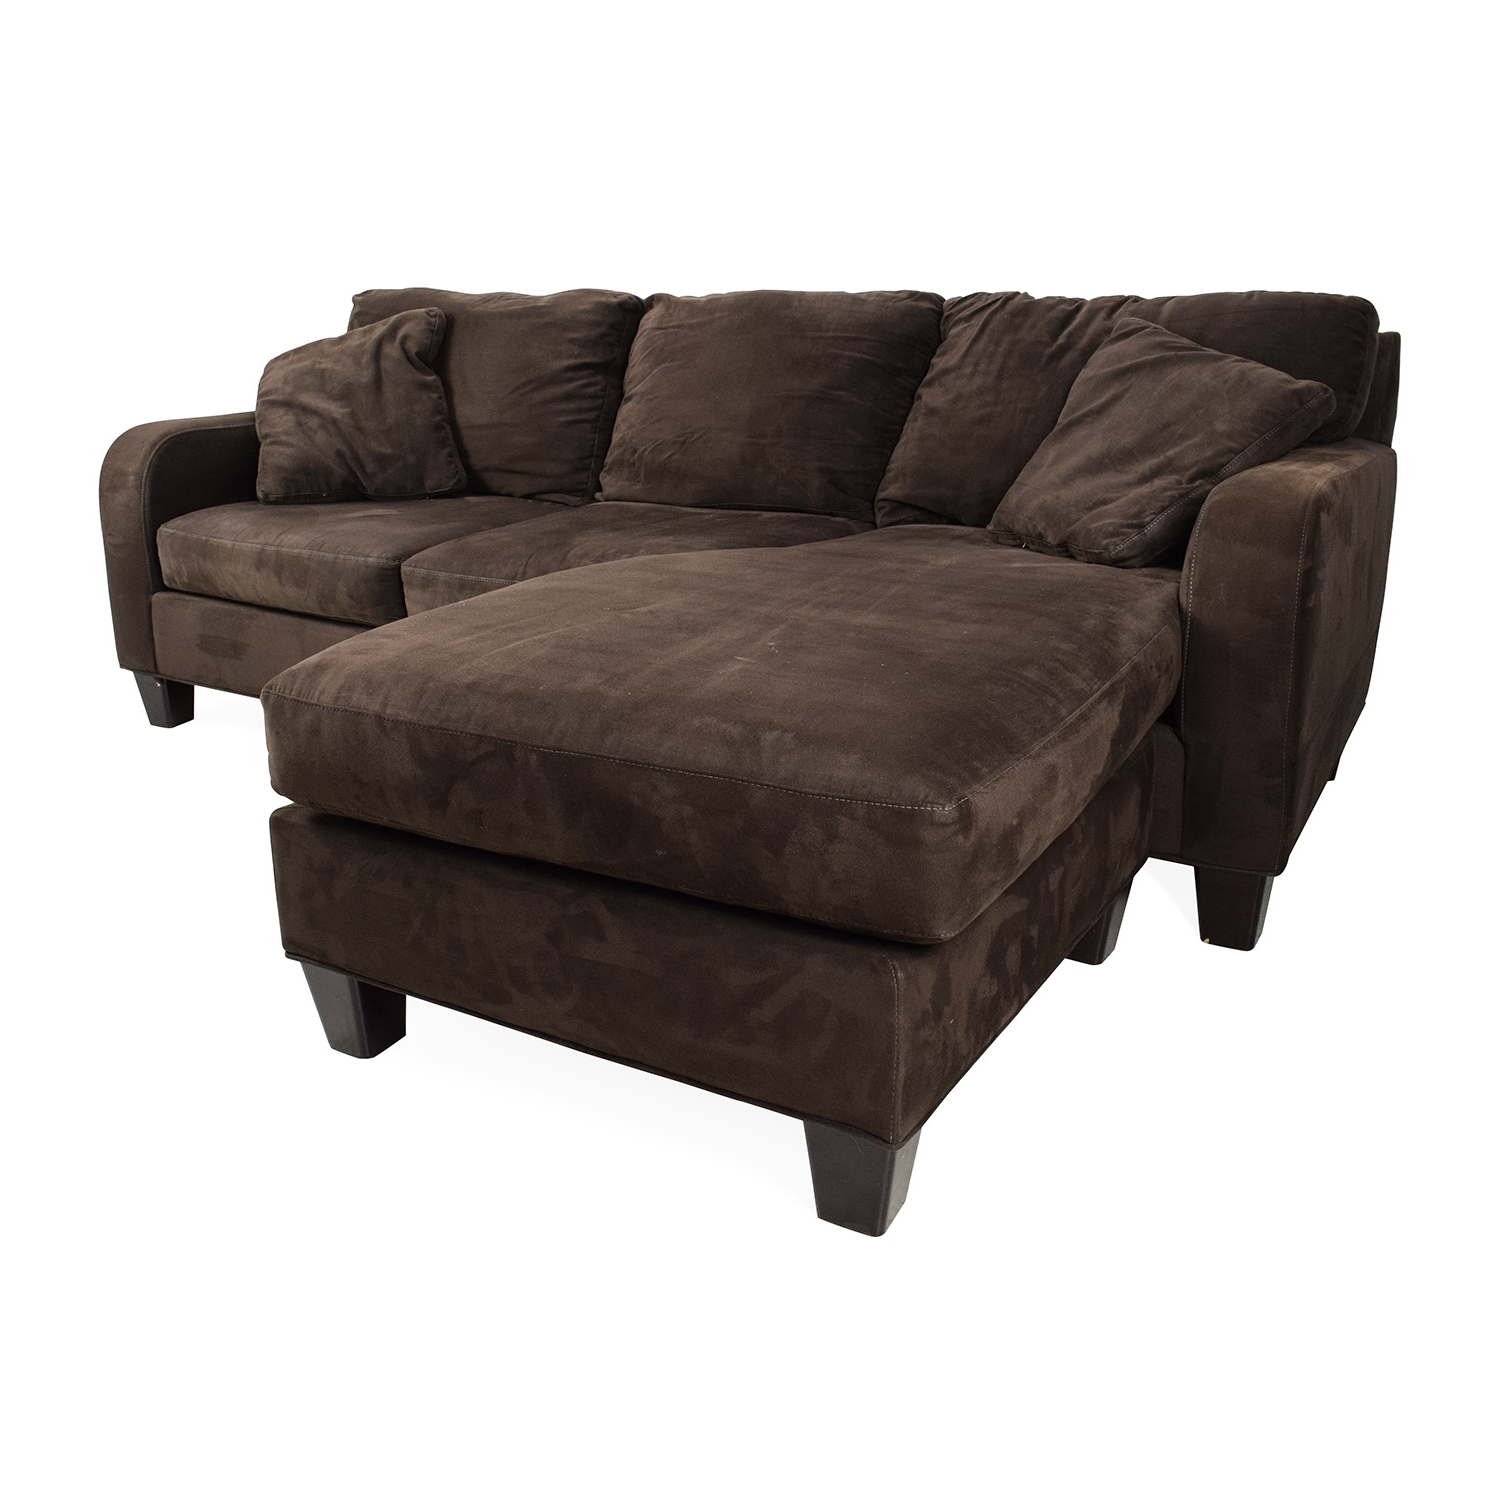 [%70% Off – Cindy Crawford Home Cindy Crawford Bailey Microfiber For Most Recently Released Cindy Crawford Sofas|Cindy Crawford Sofas In Famous 70% Off – Cindy Crawford Home Cindy Crawford Bailey Microfiber|Preferred Cindy Crawford Sofas Intended For 70% Off – Cindy Crawford Home Cindy Crawford Bailey Microfiber|Most Recently Released 70% Off – Cindy Crawford Home Cindy Crawford Bailey Microfiber Throughout Cindy Crawford Sofas%] (View 7 of 15)